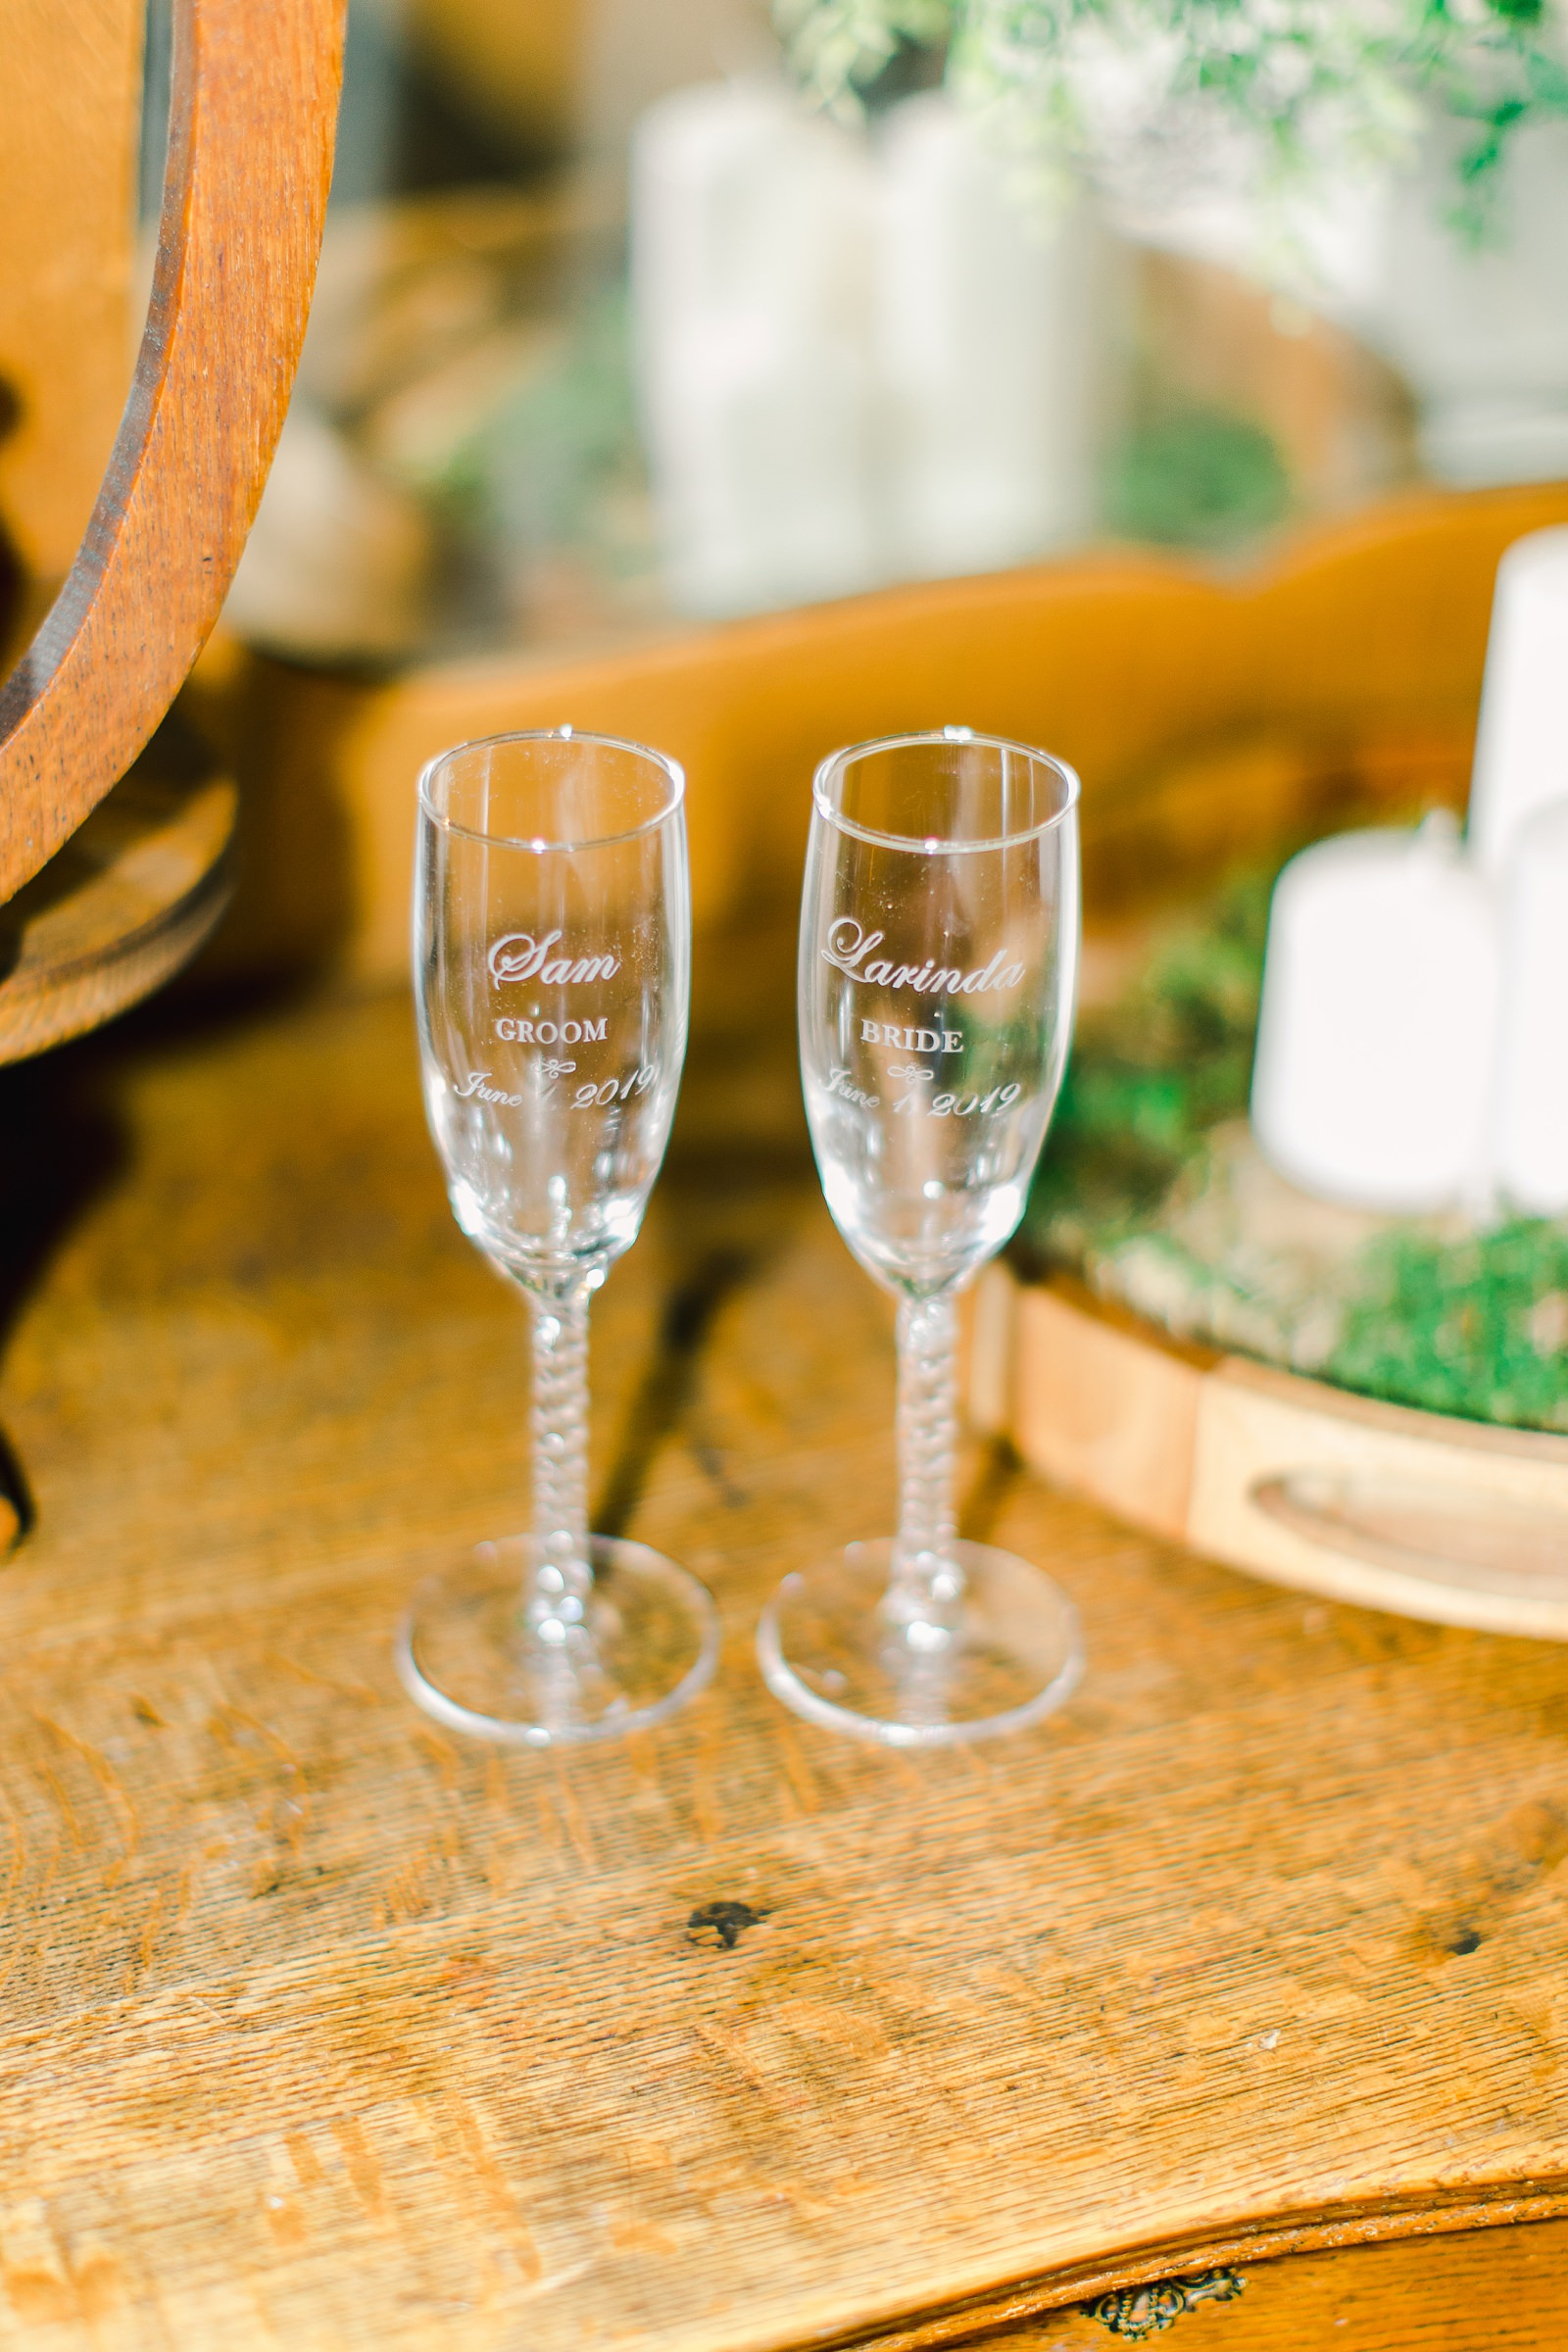 Millcreek Inn Summer Wedding, Utah wedding photography Millcreek Canyon, Salt Lake City, bride and groom toasting glasses personalized